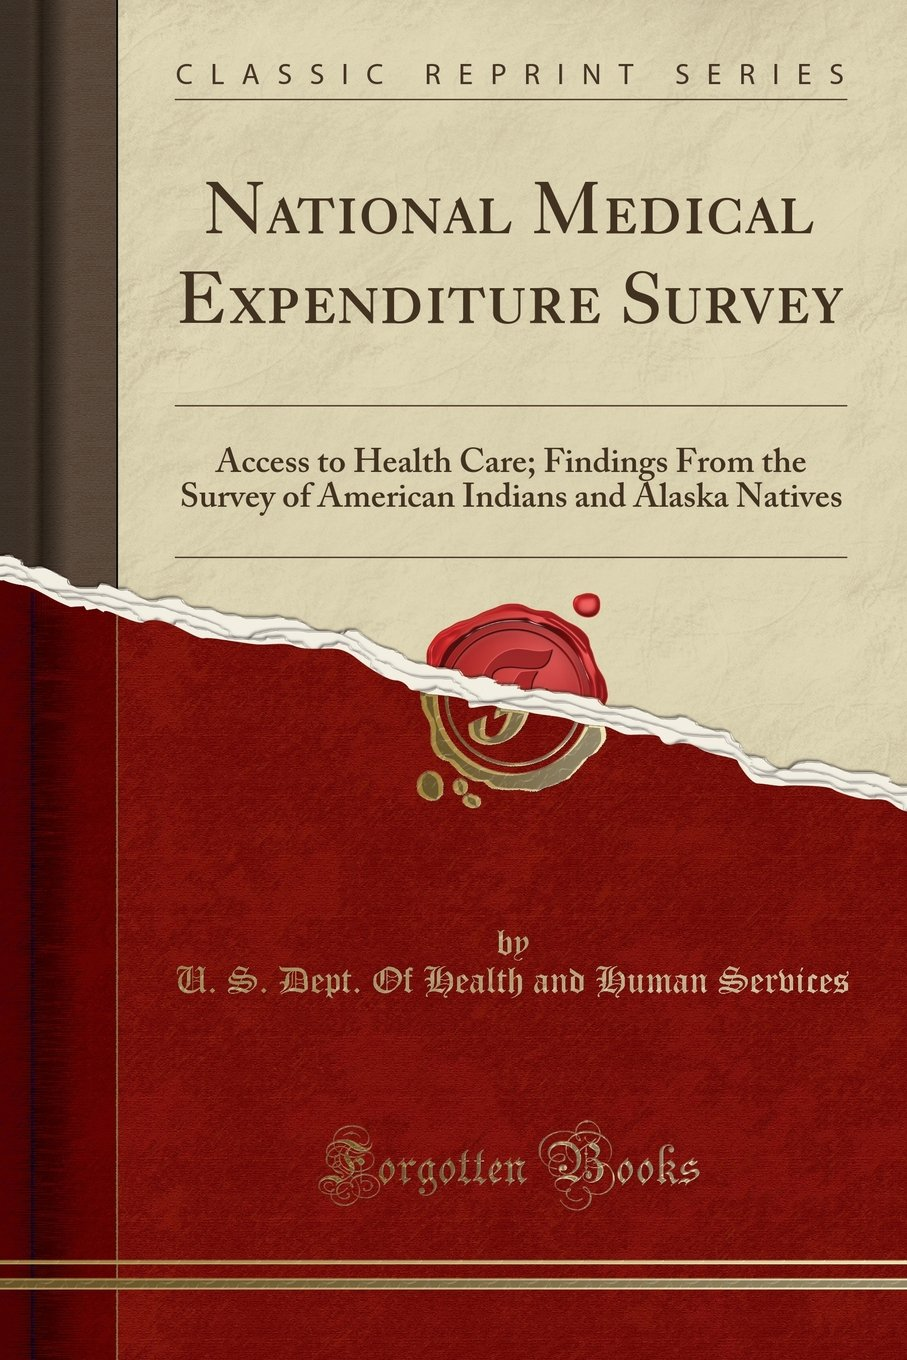 national-medical-expenditure-survey-access-to-health-care-findings-from-the-survey-of-american-indians-and-alaska-natives-classic-reprint